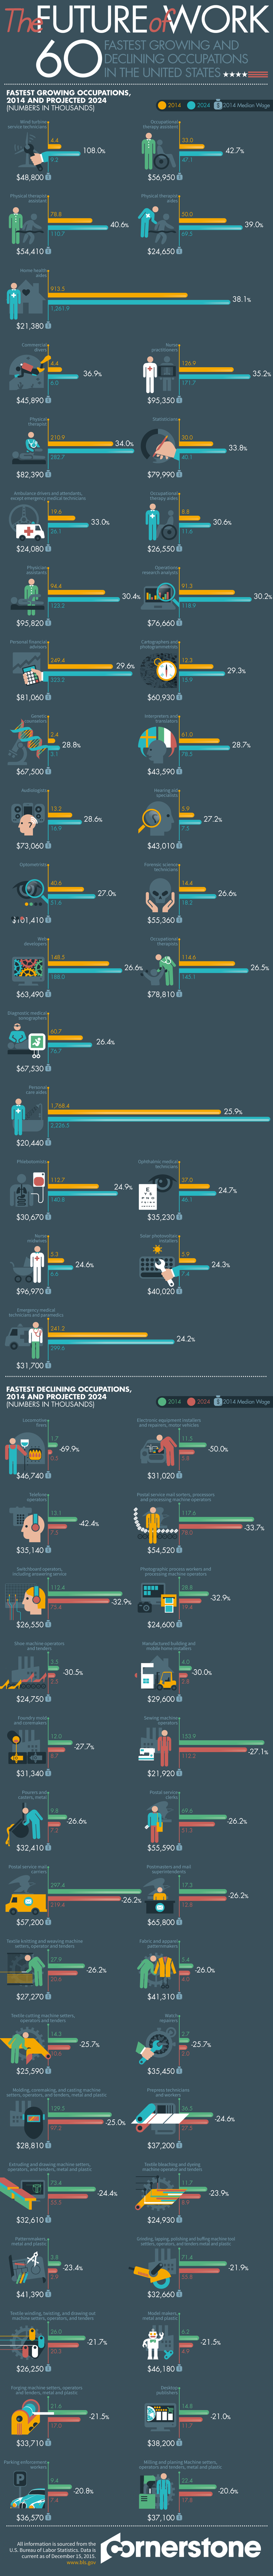 the-future-of-work-60-fastest-growing-and-declining-occupations-in-the-united-states_56dd96f9a0c4a